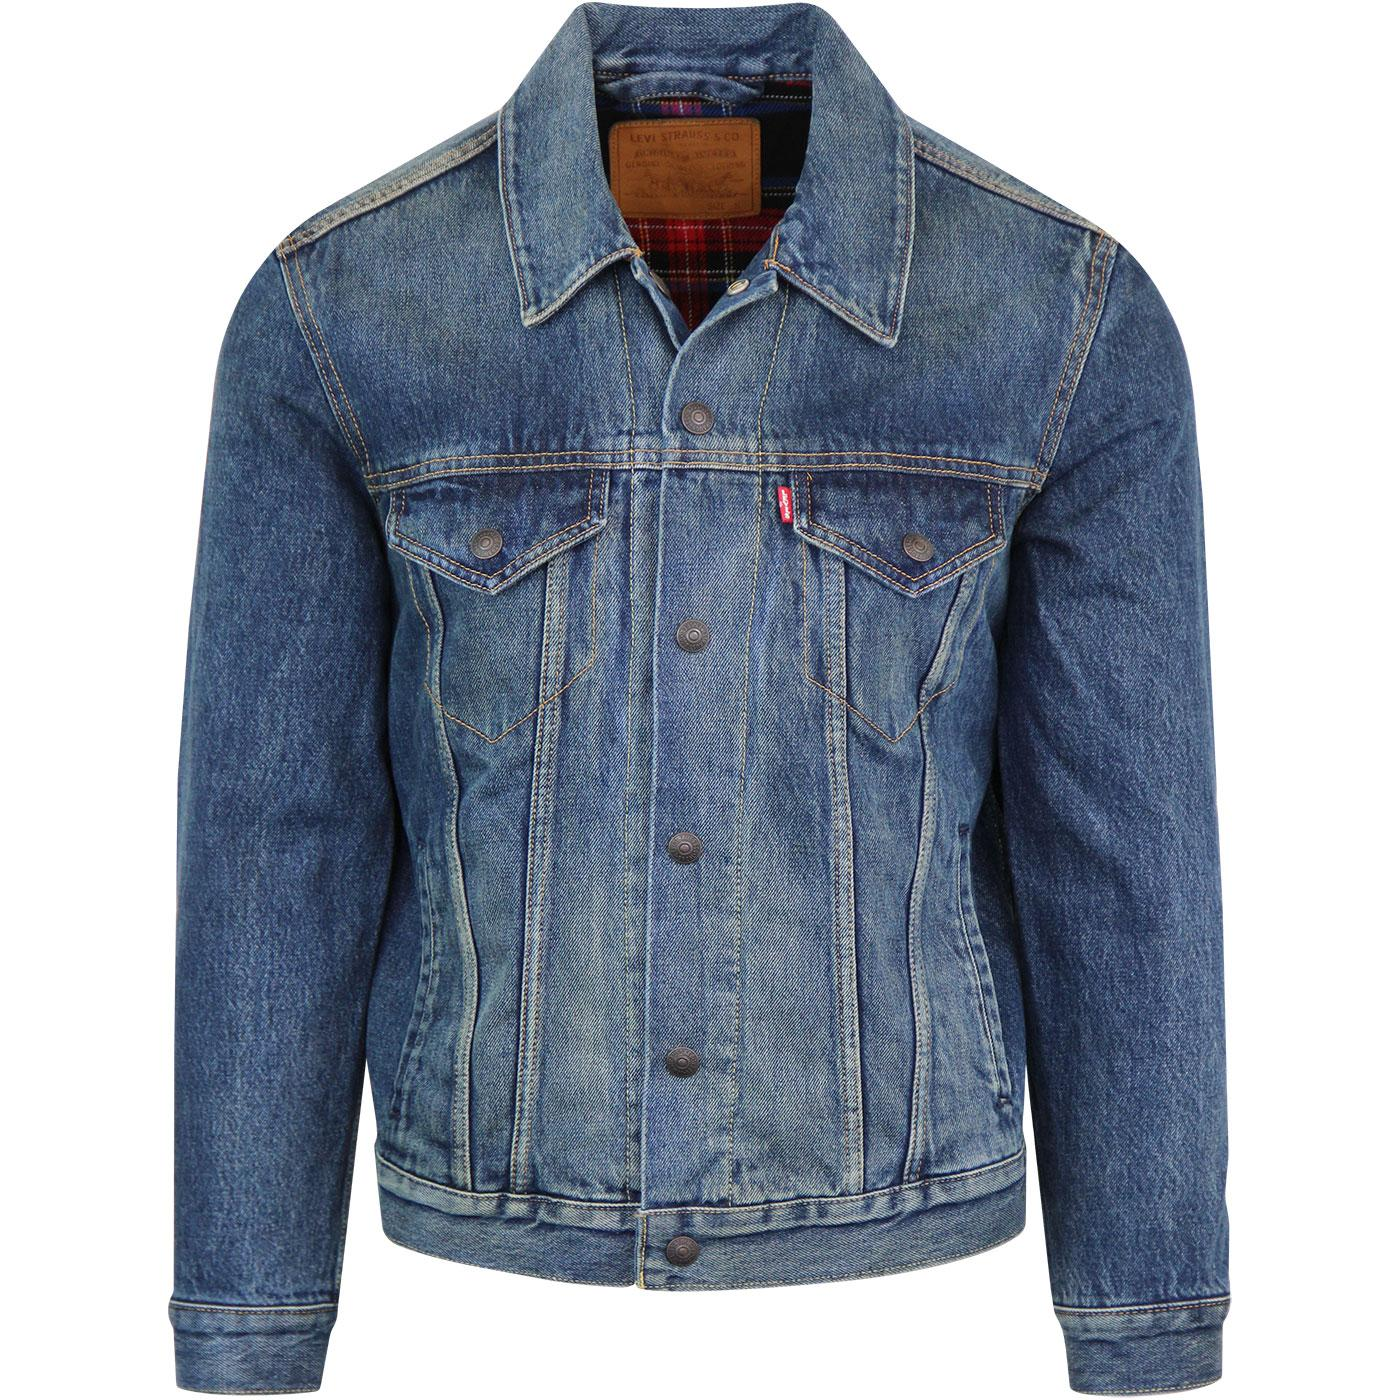 LEVI'S Retro 70s Lined Trucker Jacket in Chewy